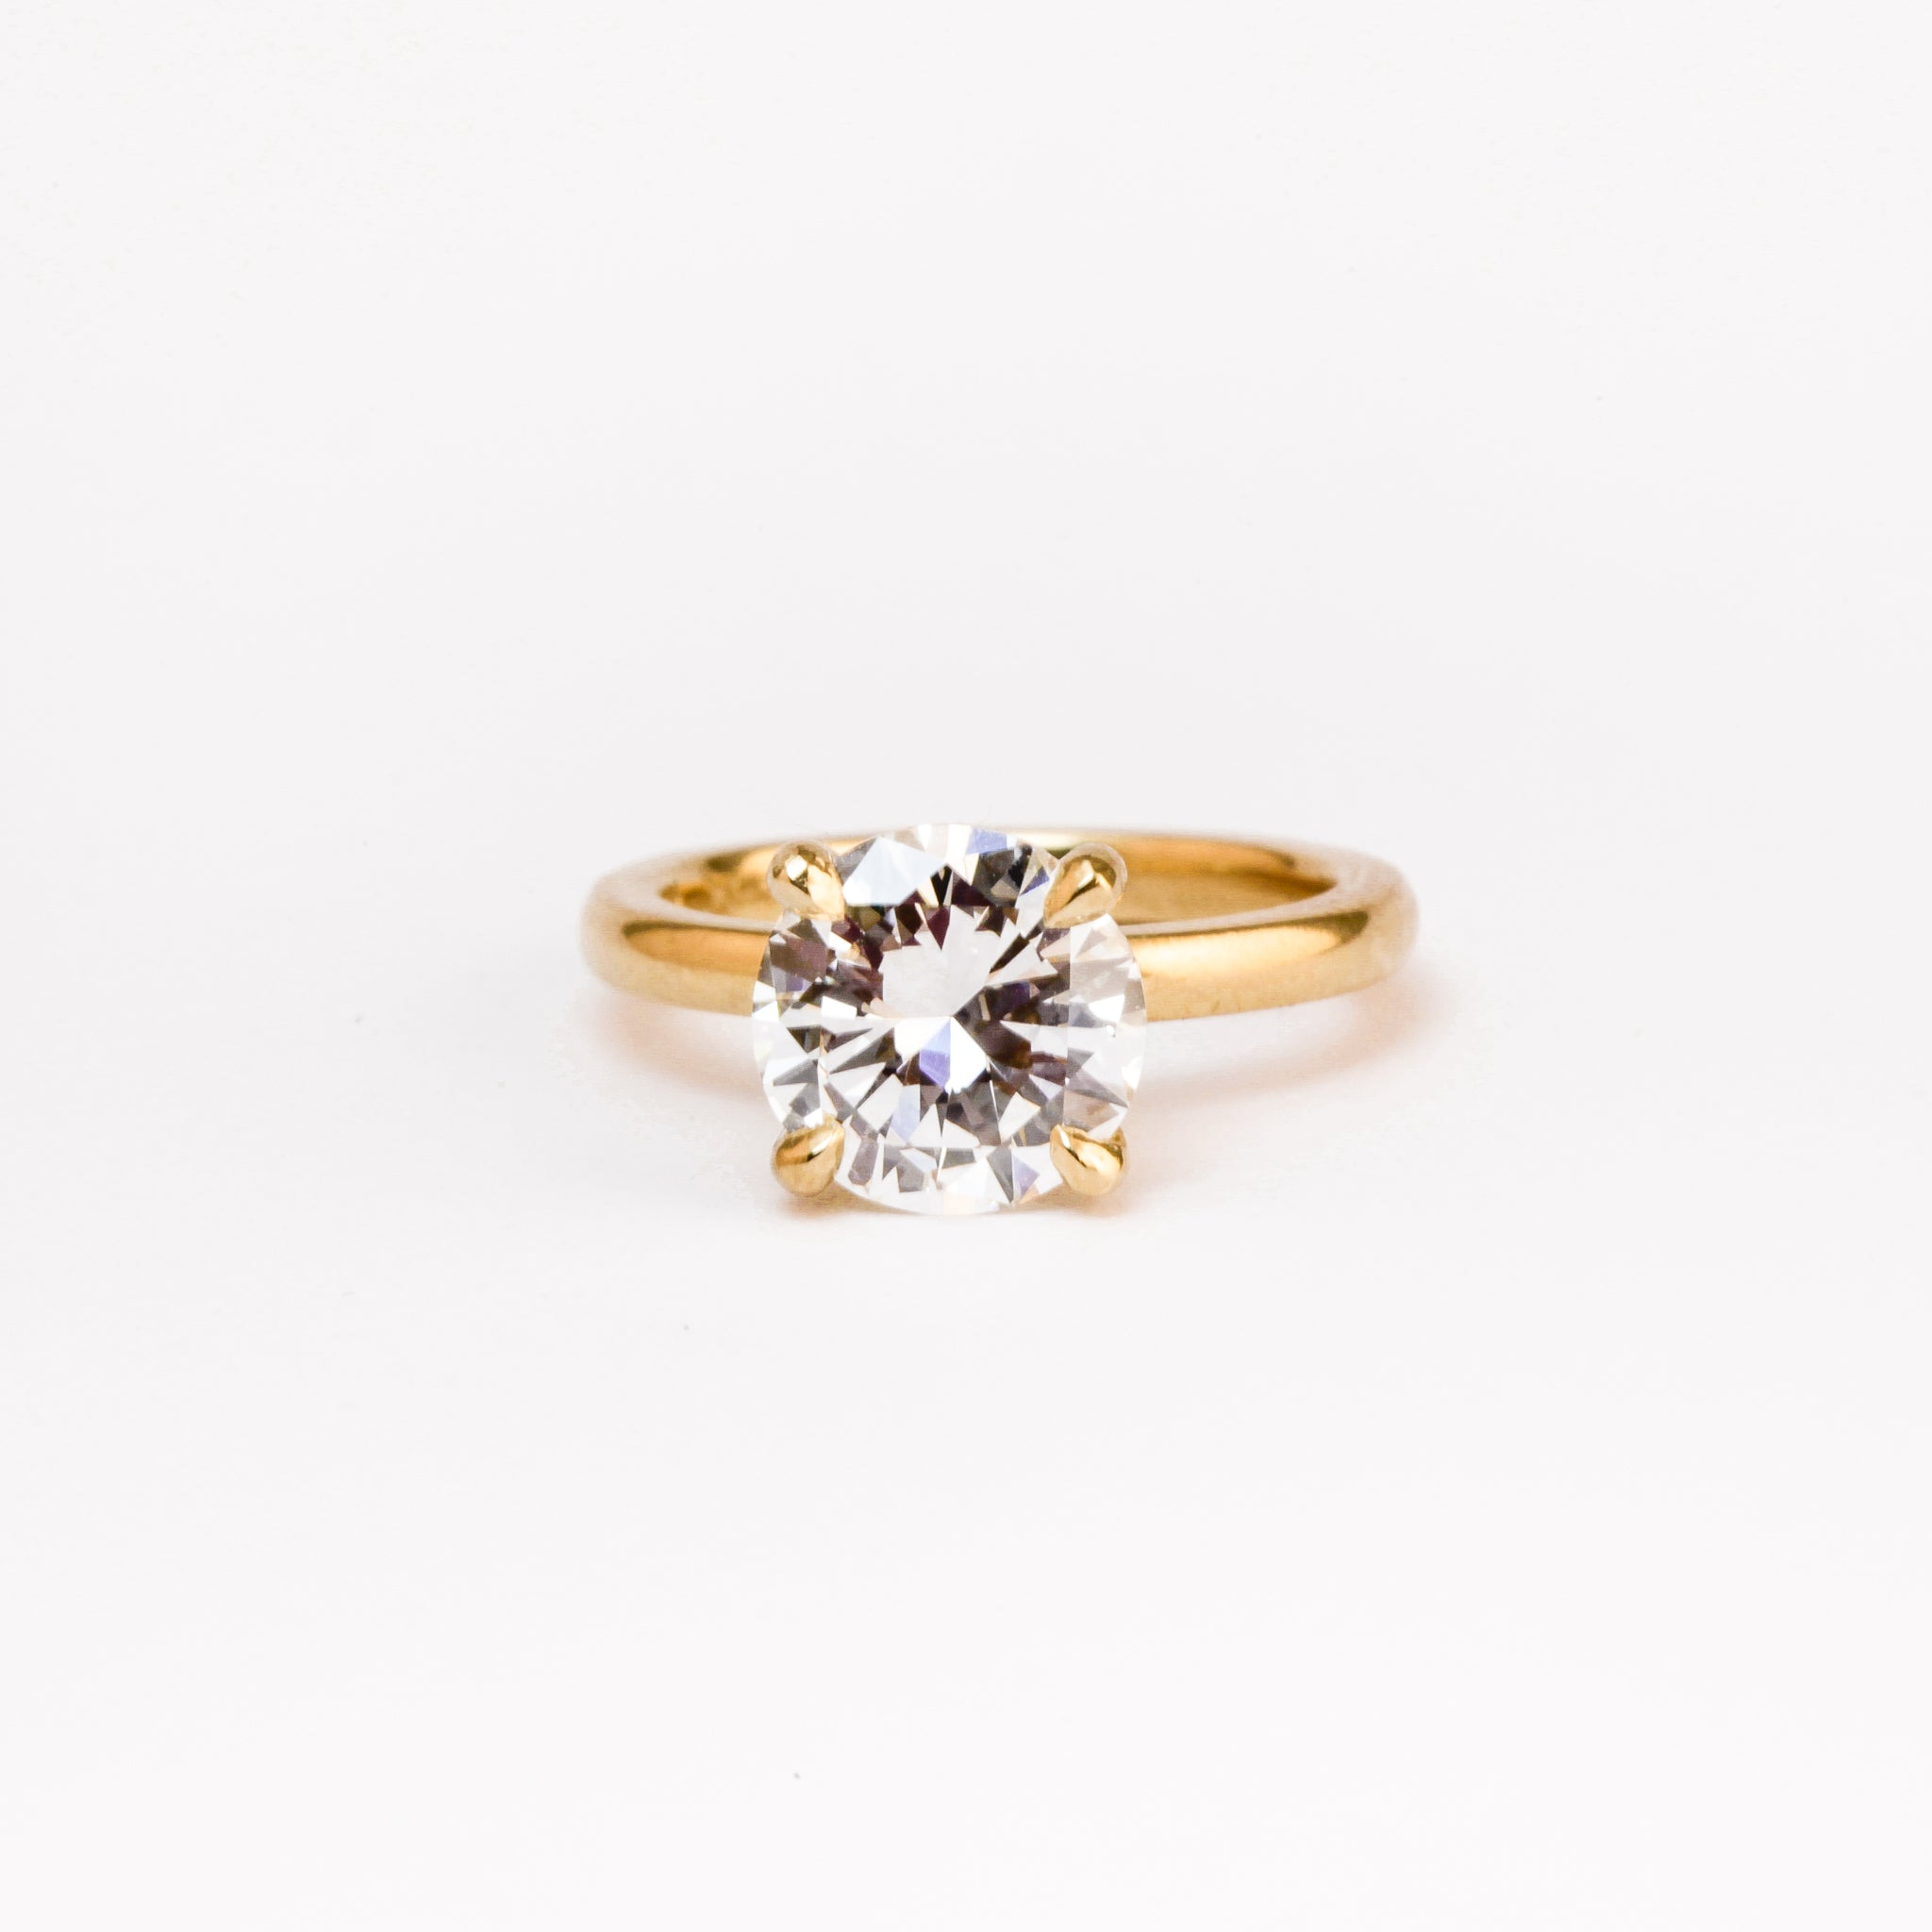 Handmade 1.5 carat Diamond Solitaire Ring in 18ct Yellow Gold, Custom, Bespoke